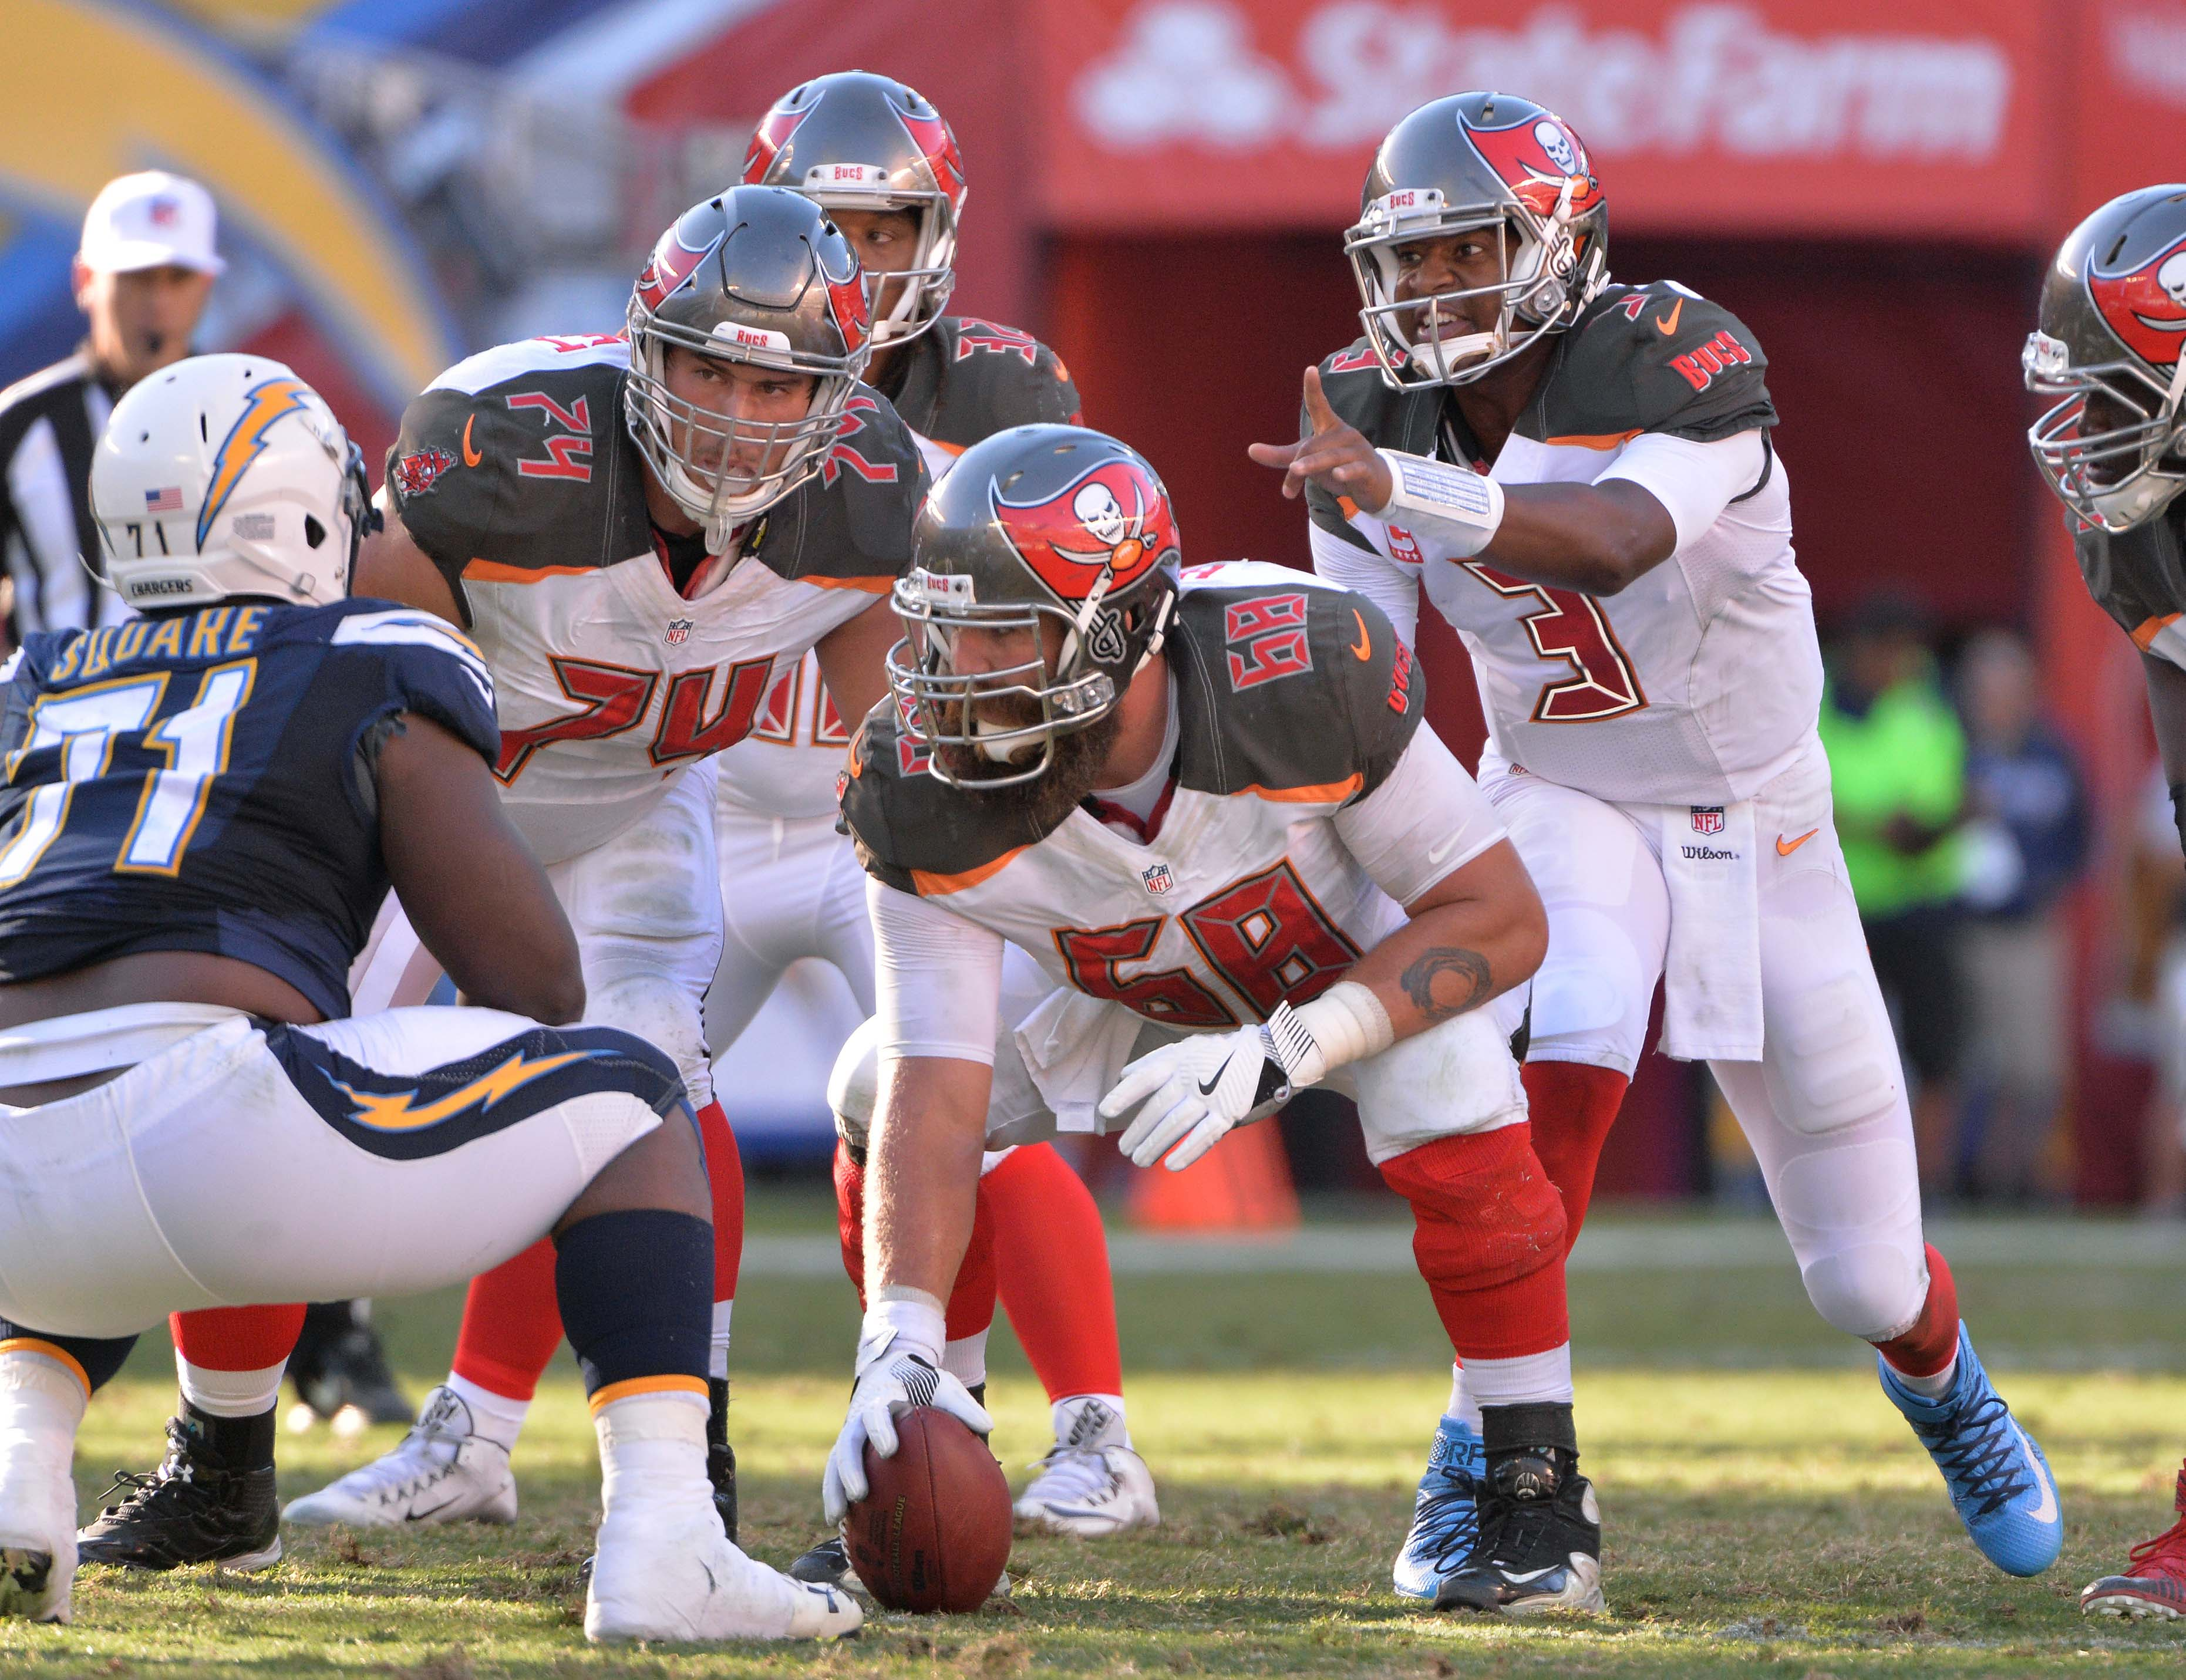 9736340-nfl-tampa-bay-buccaneers-at-san-diego-chargers